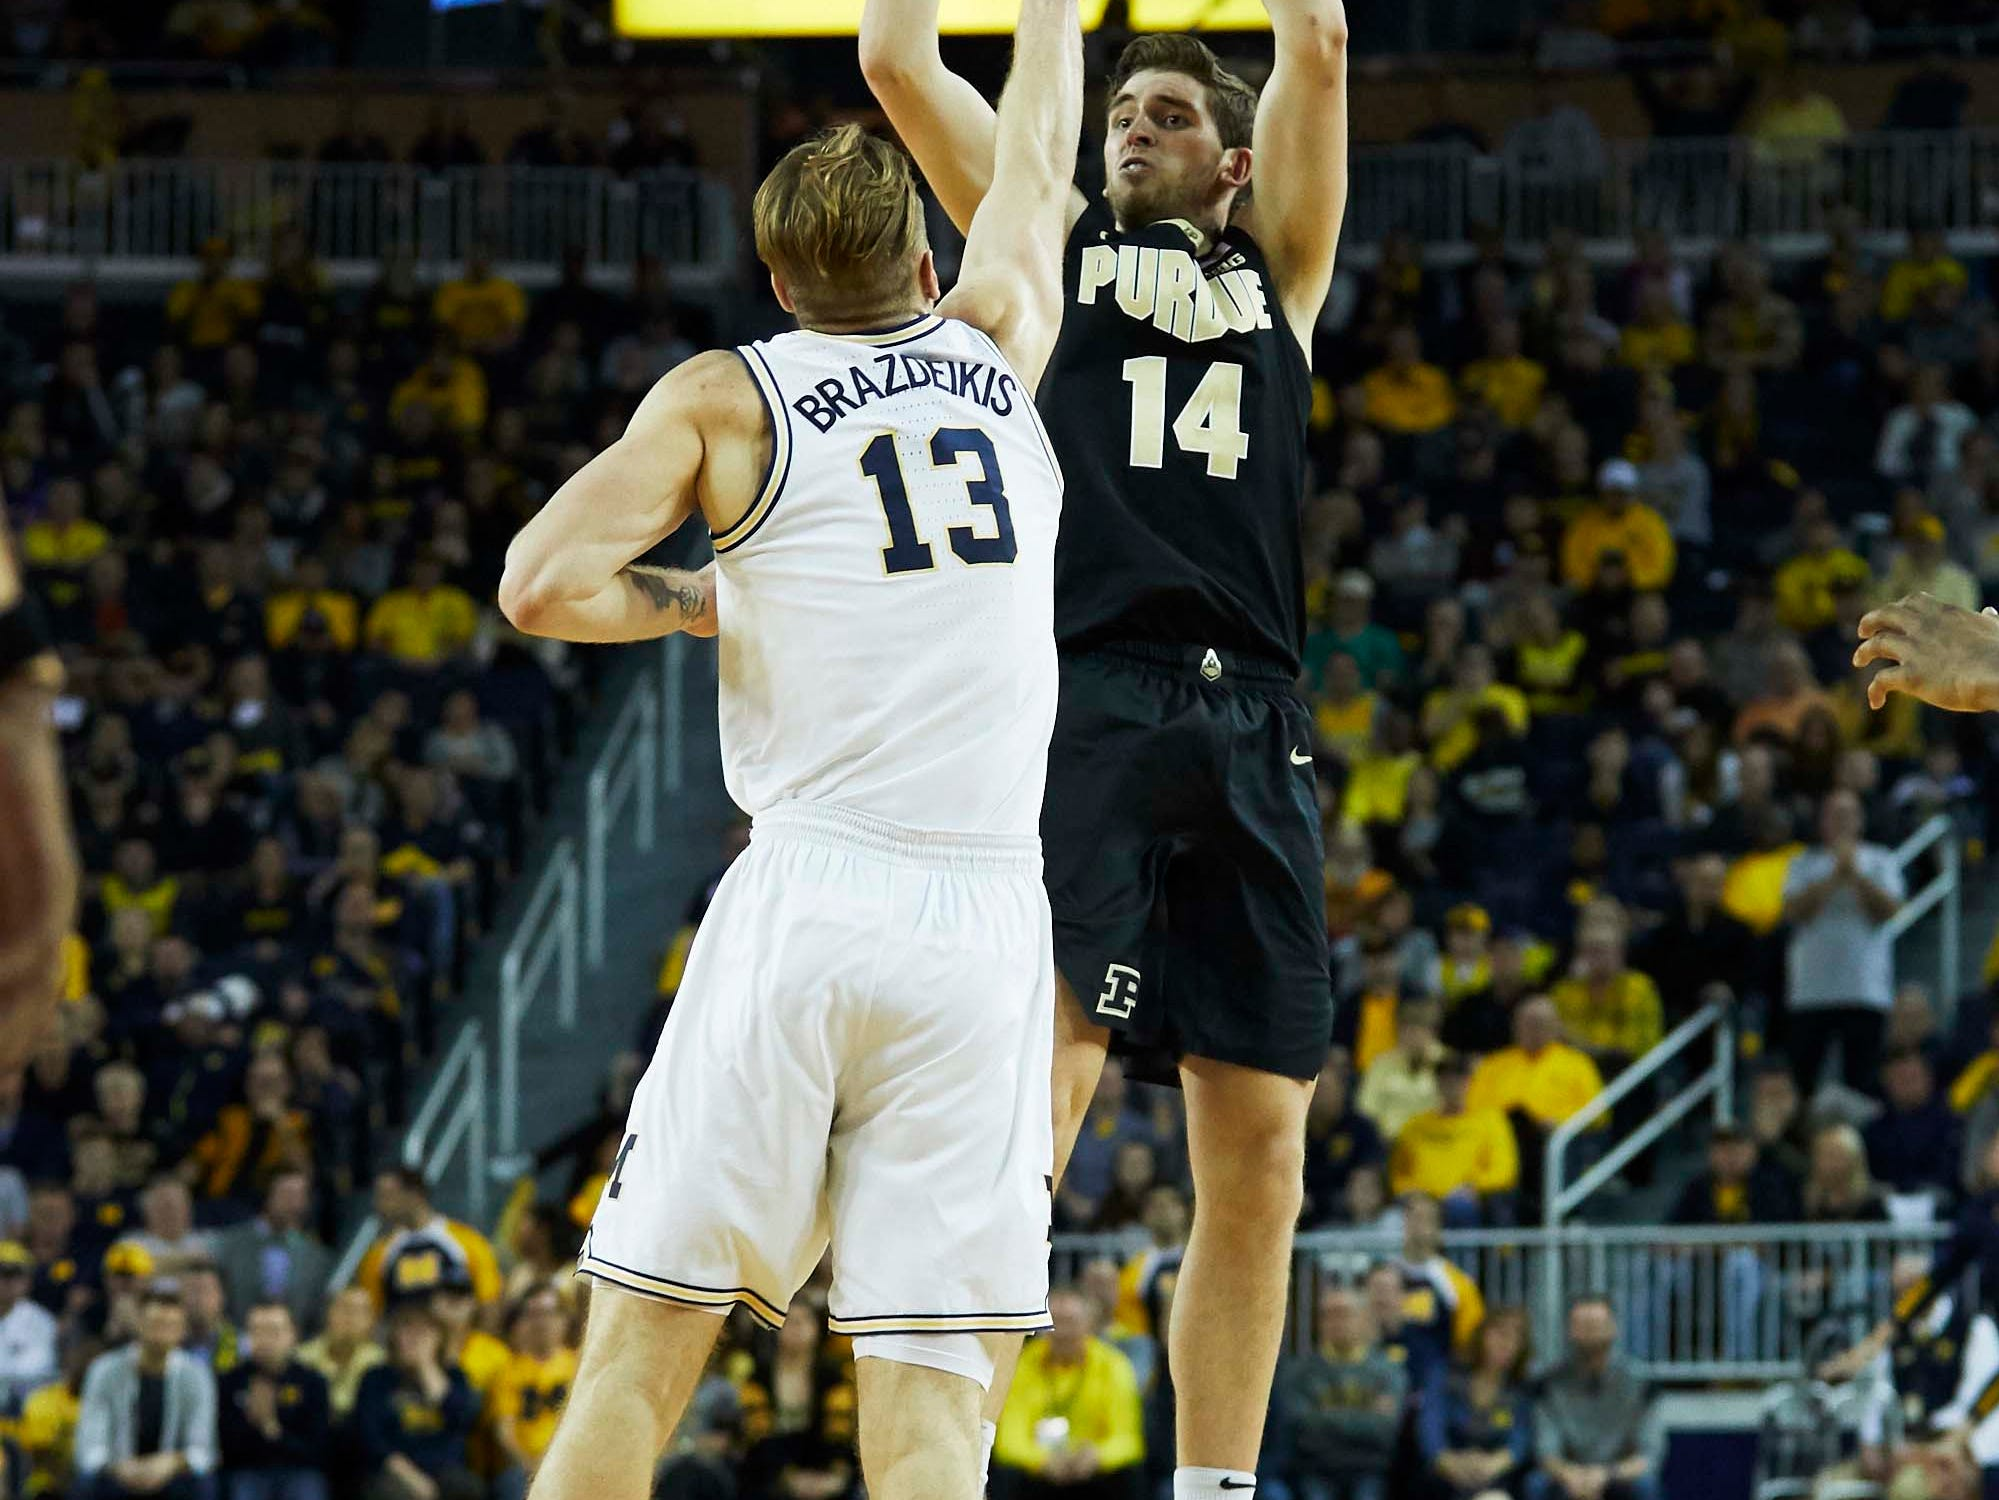 Dec 1, 2018; Ann Arbor, MI, USA; Purdue Boilermakers guard Ryan Cline (14) shoots on Michigan Wolverines forward Ignas Brazdeikis (13) in the second half at Crisler Center. Mandatory Credit: Rick Osentoski-USA TODAY Sports